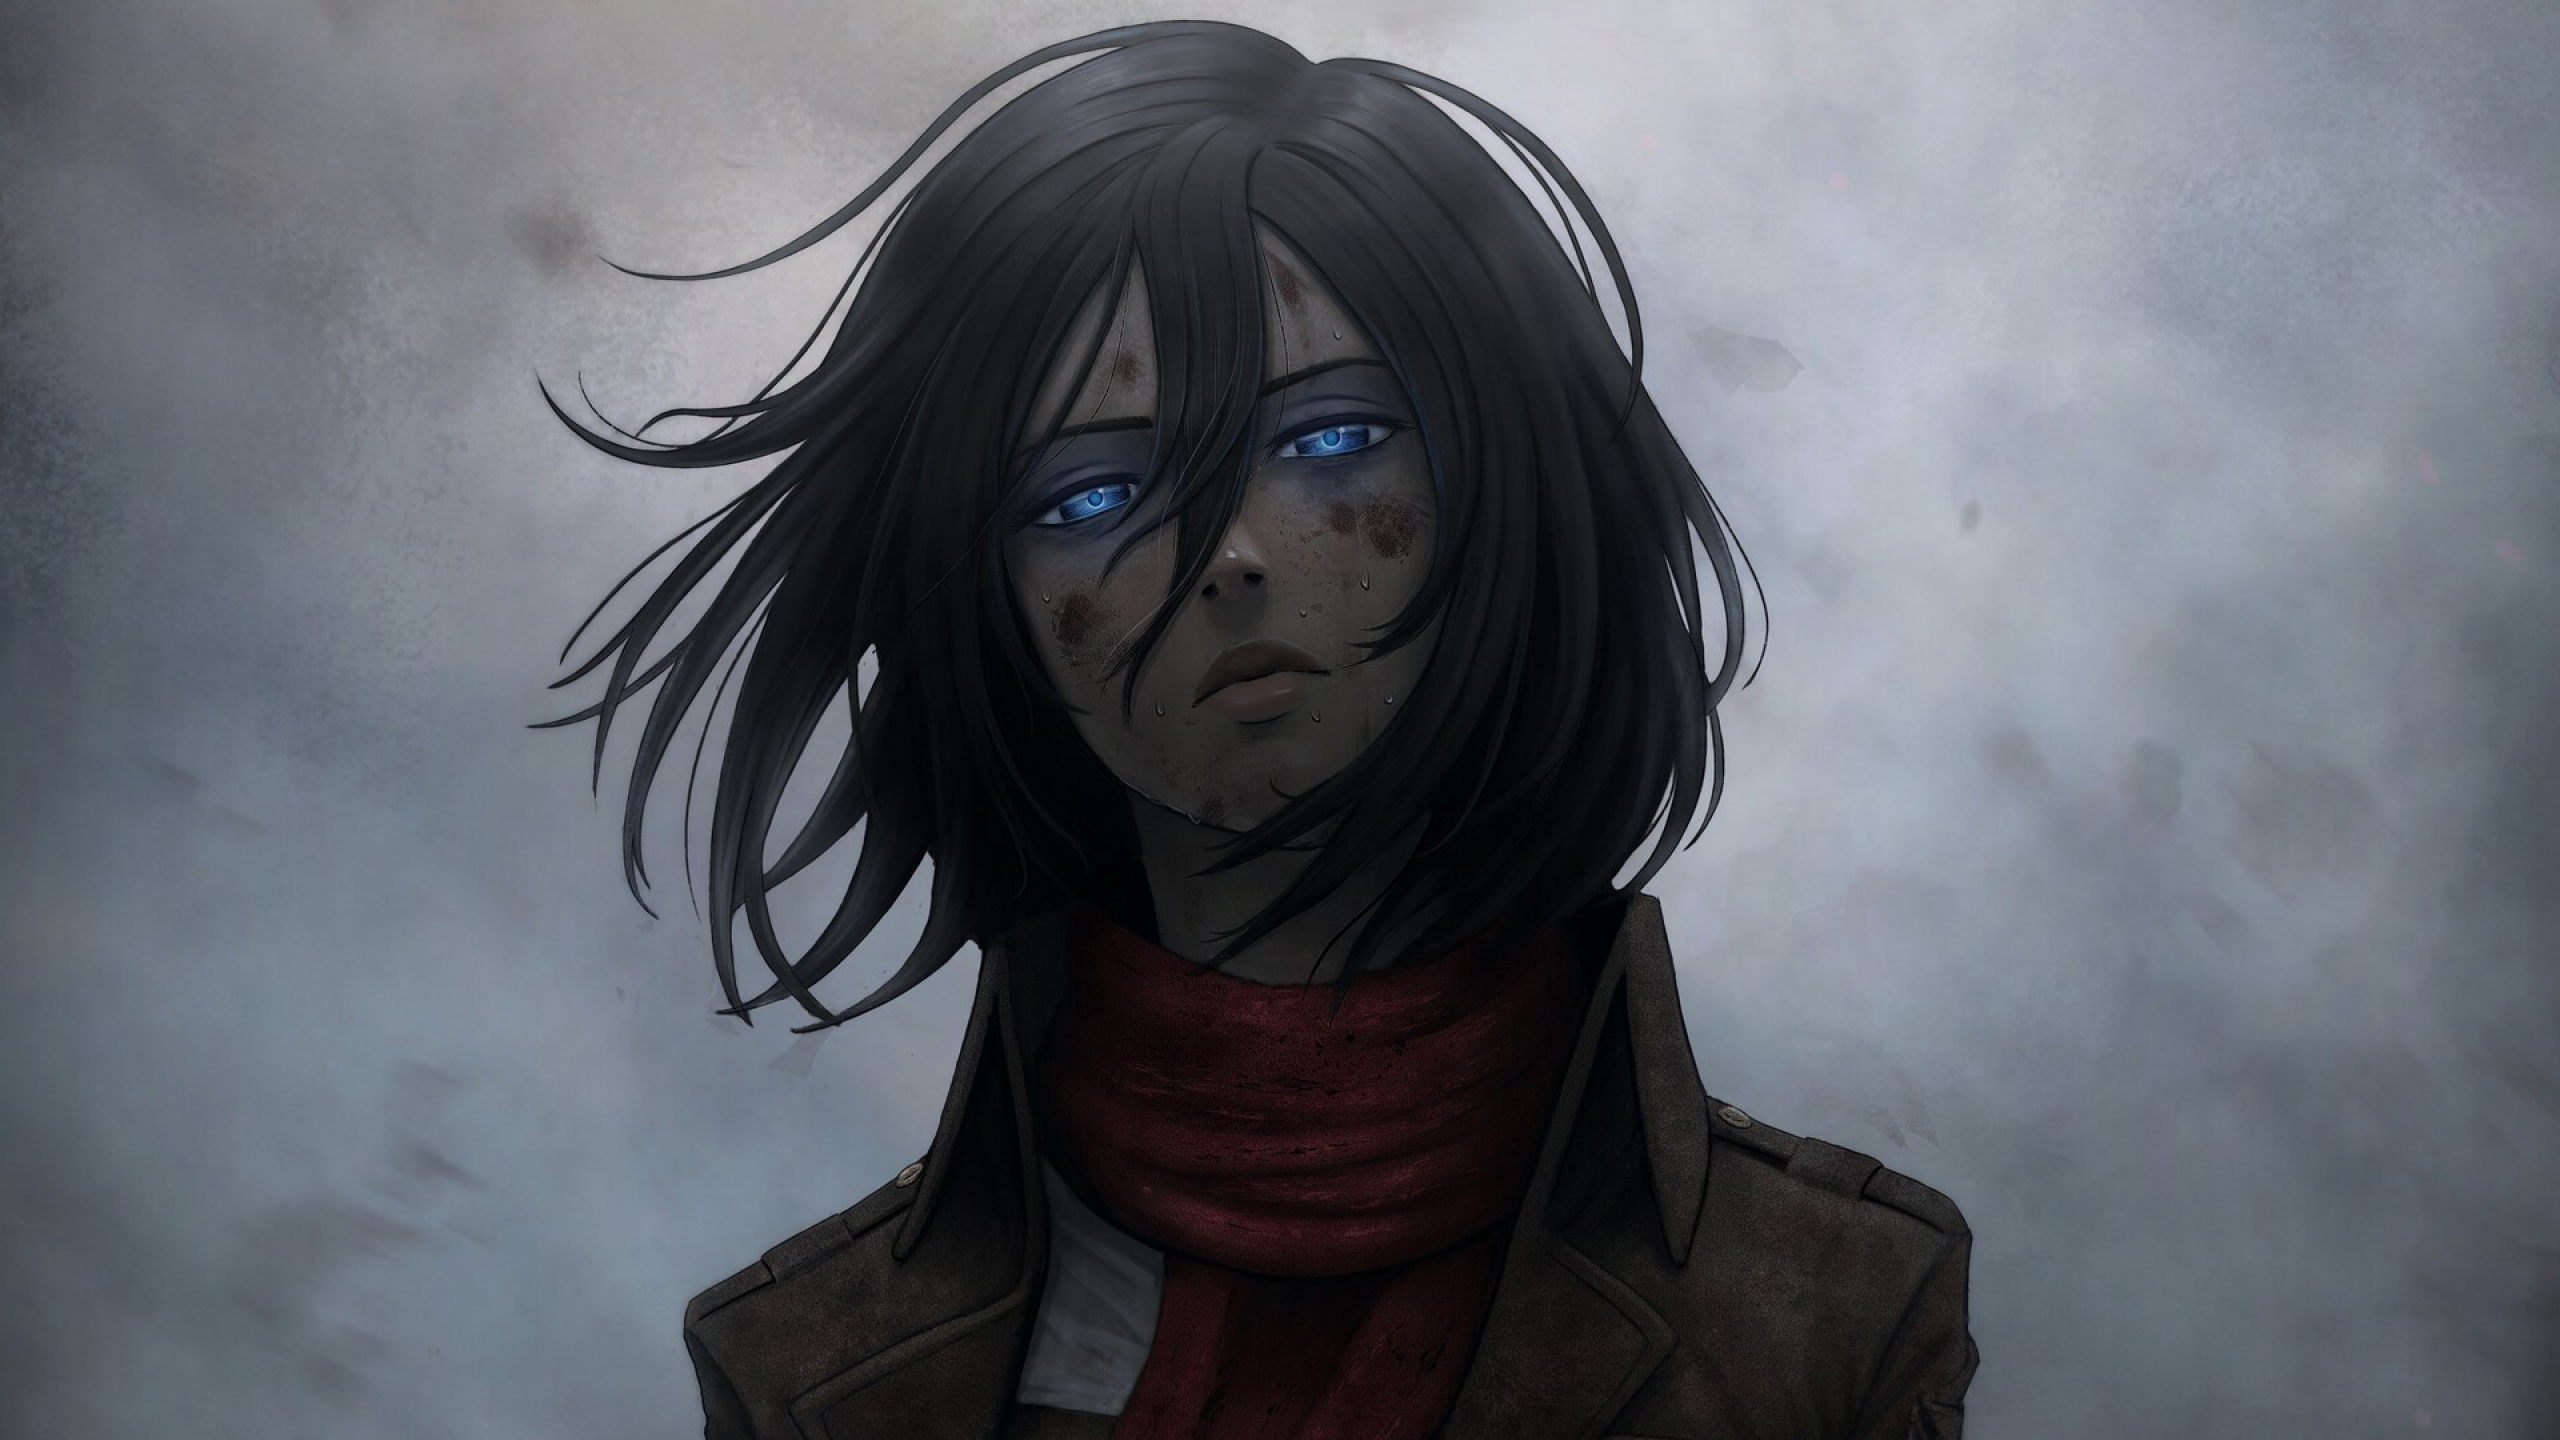 2560x1440 Mikasa Ackerman 1440p Resolution Wallpaper Hd